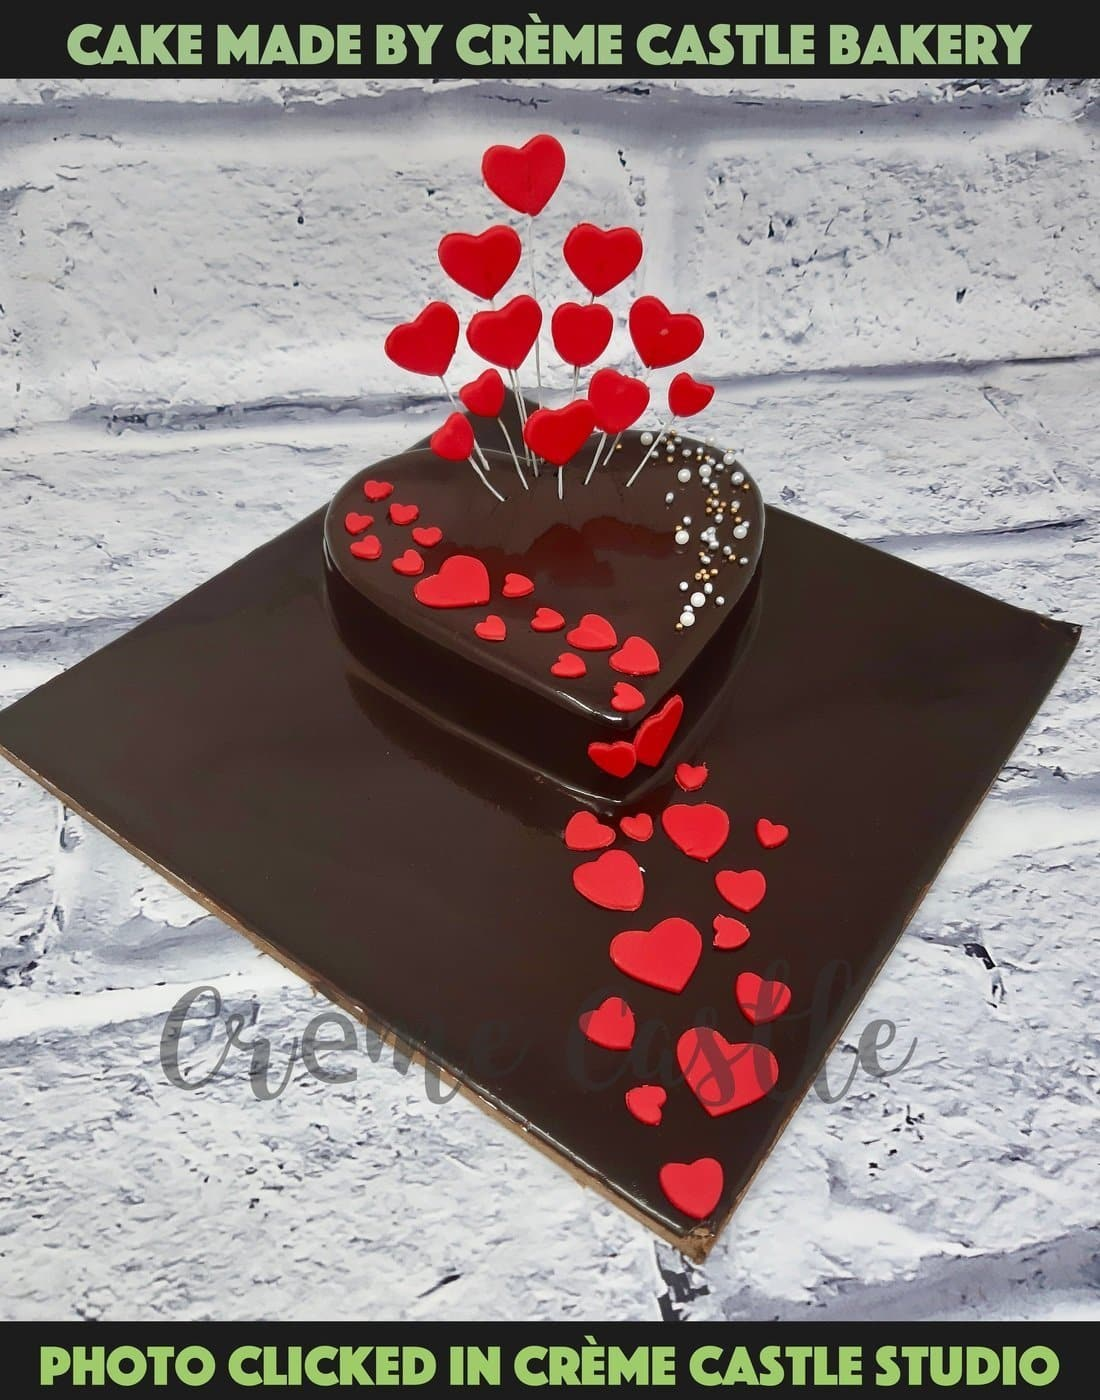 A chocolate based heart shaped cake with red hearts sprinkled all over the cake. Cake for someone who loves chocolate and loves you too